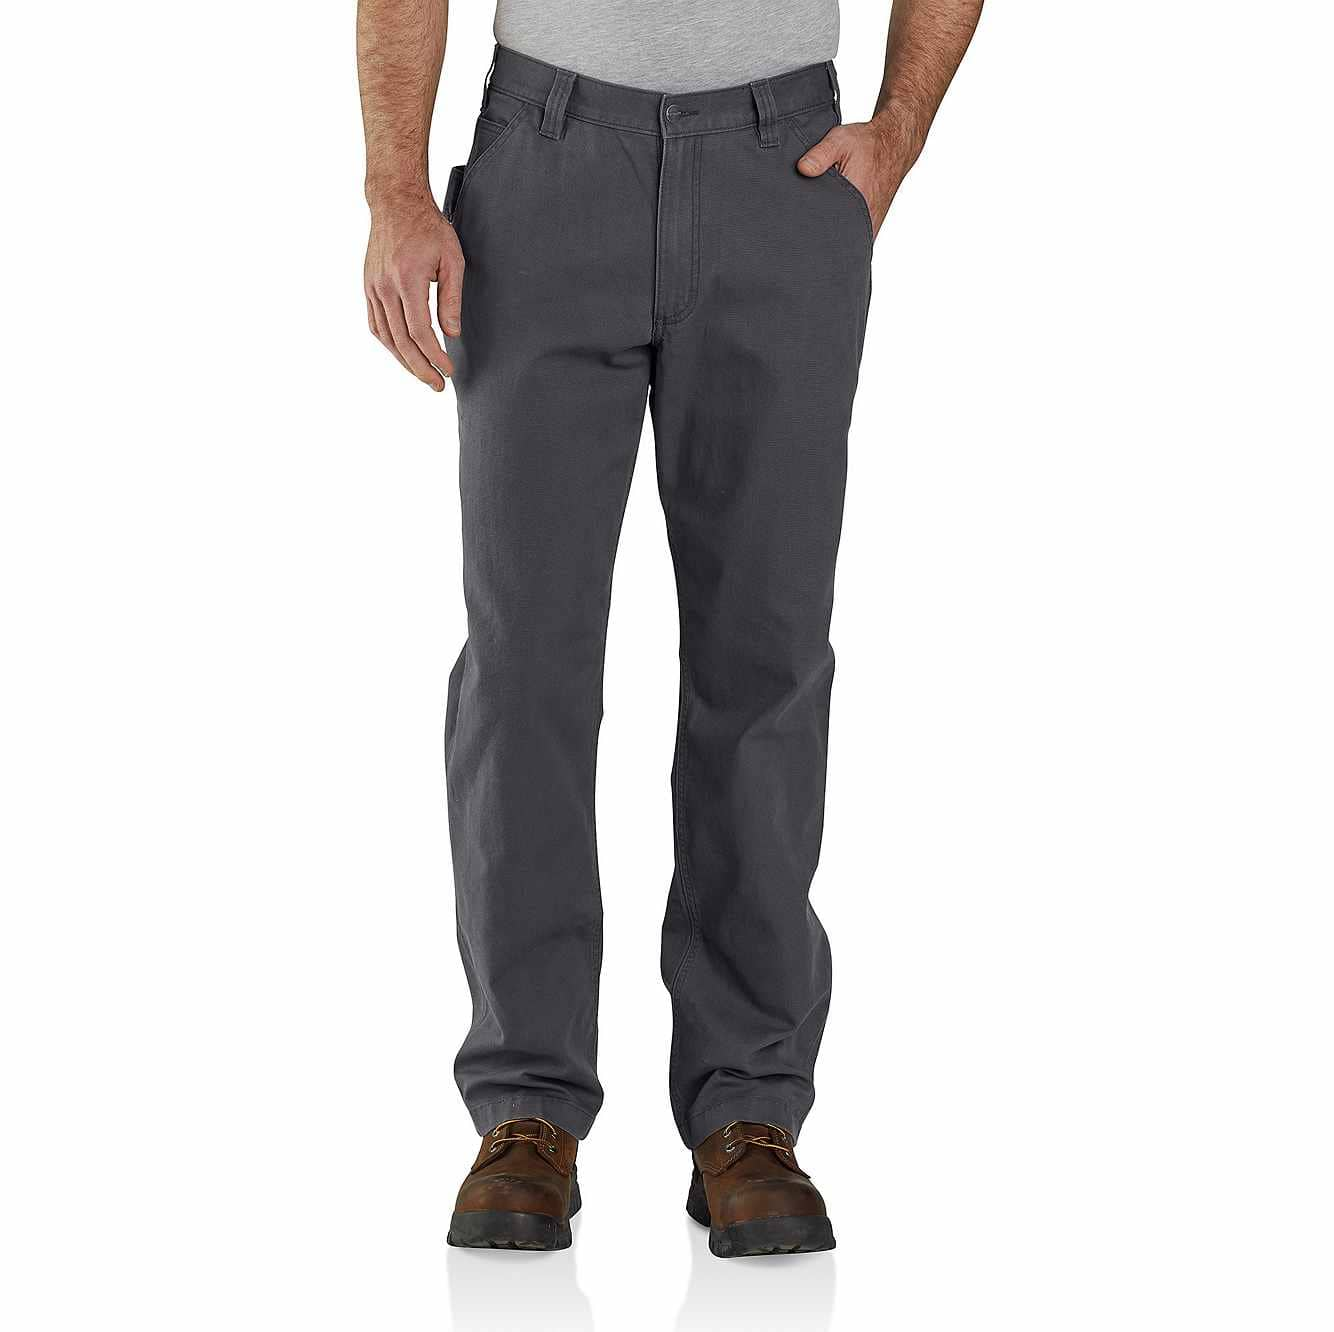 Picture of Rugged Flex® Loose Fit Canvas Work Pant in Shadow